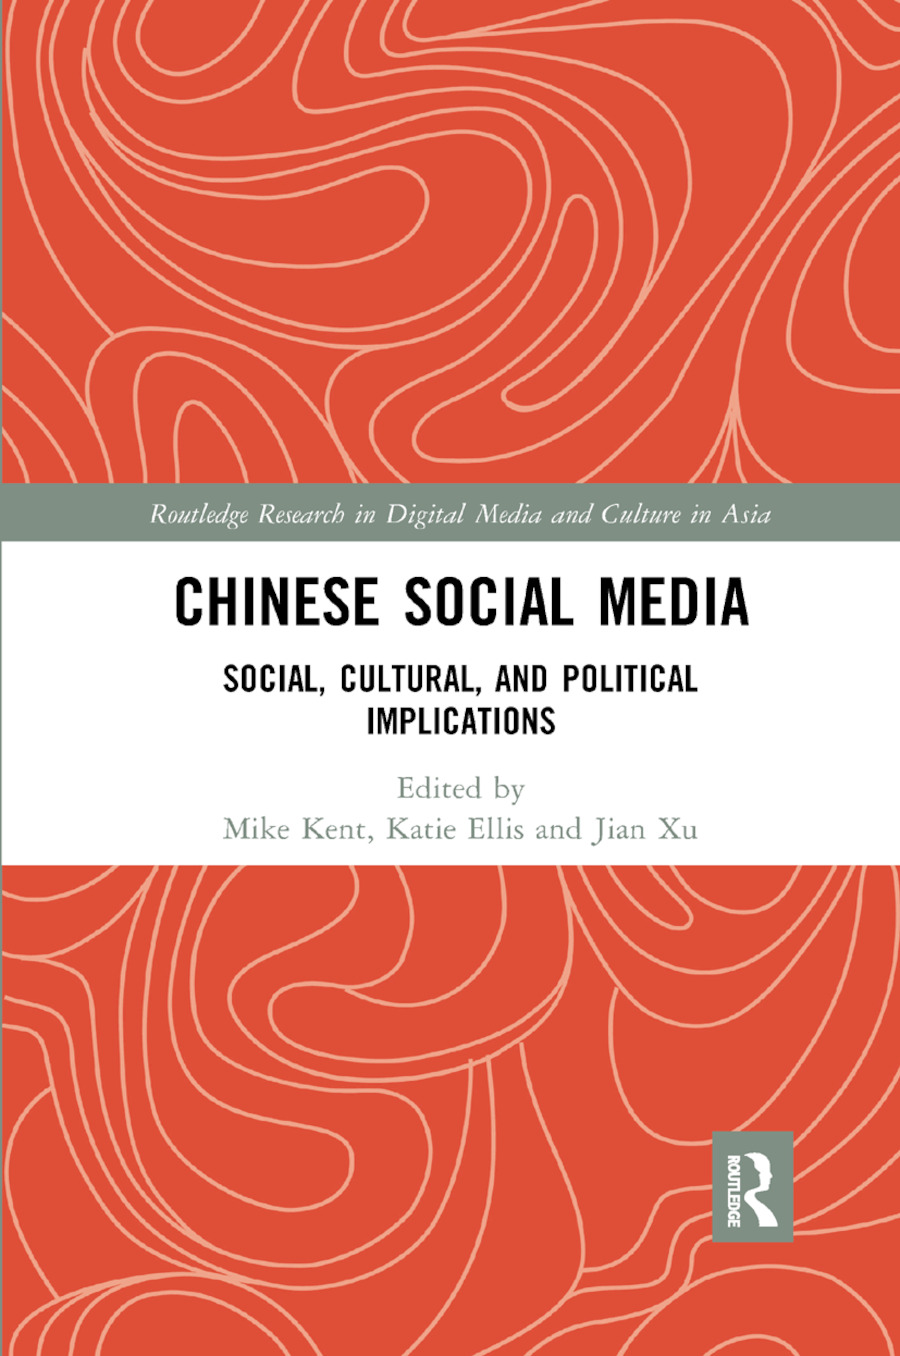 Chinese Social Media: Social, Cultural, and Political Implications book cover